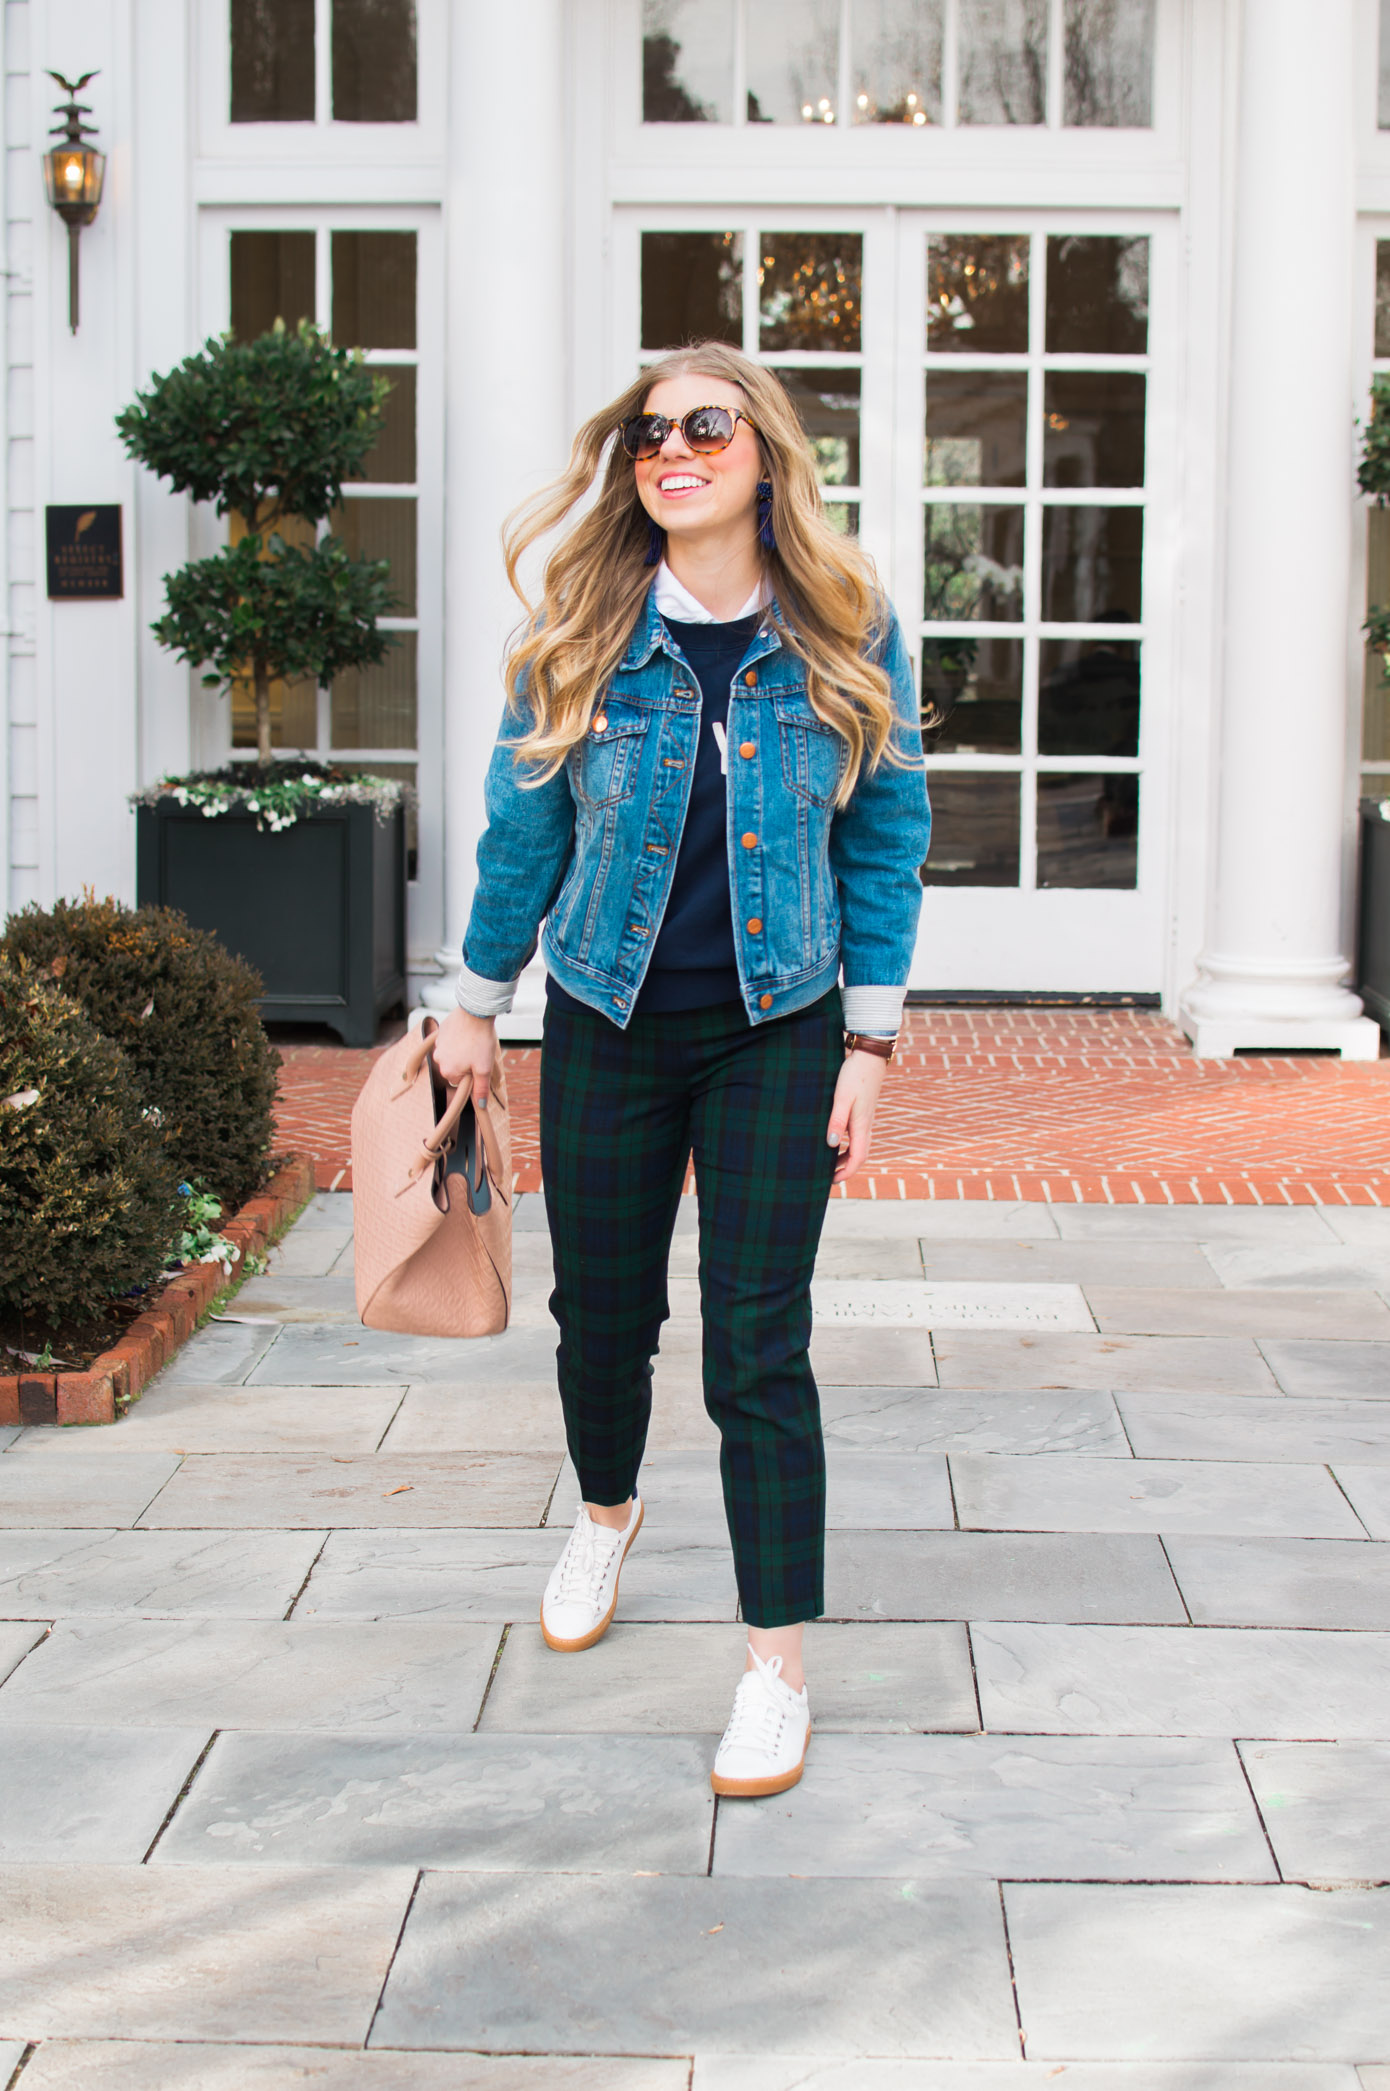 Casual Plaid Pants | Denim Jacket Styled for Winter | Louella Reese Life & Style Blog